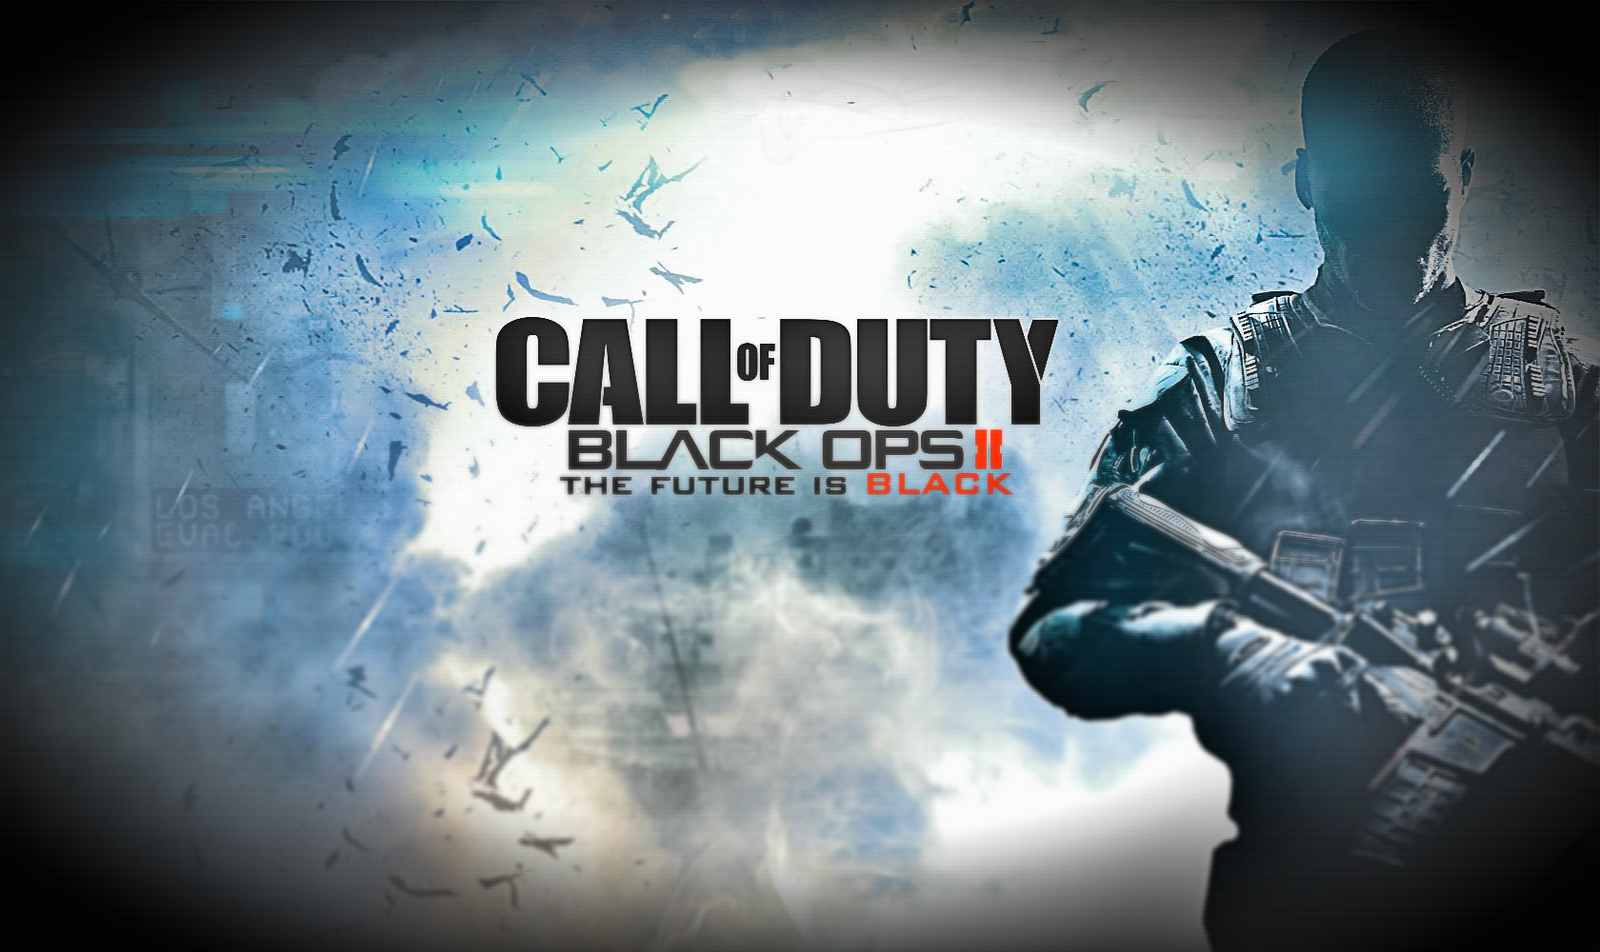 Call of duty call of duty black ops 2 hd wallpapers